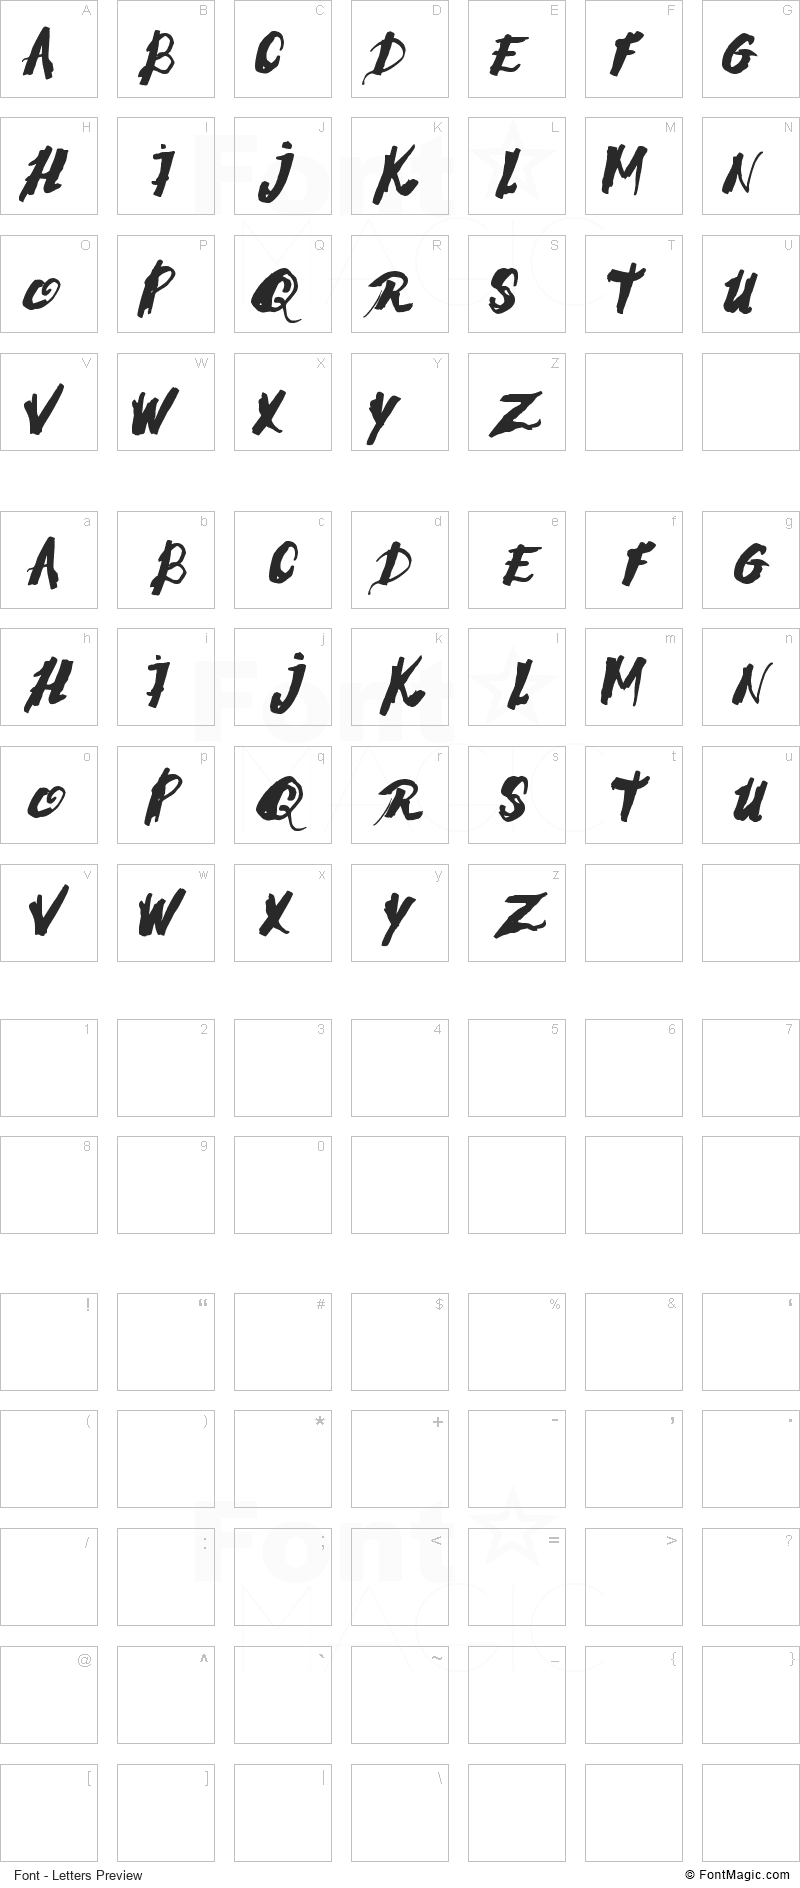 Morning Stress Font - All Latters Preview Chart